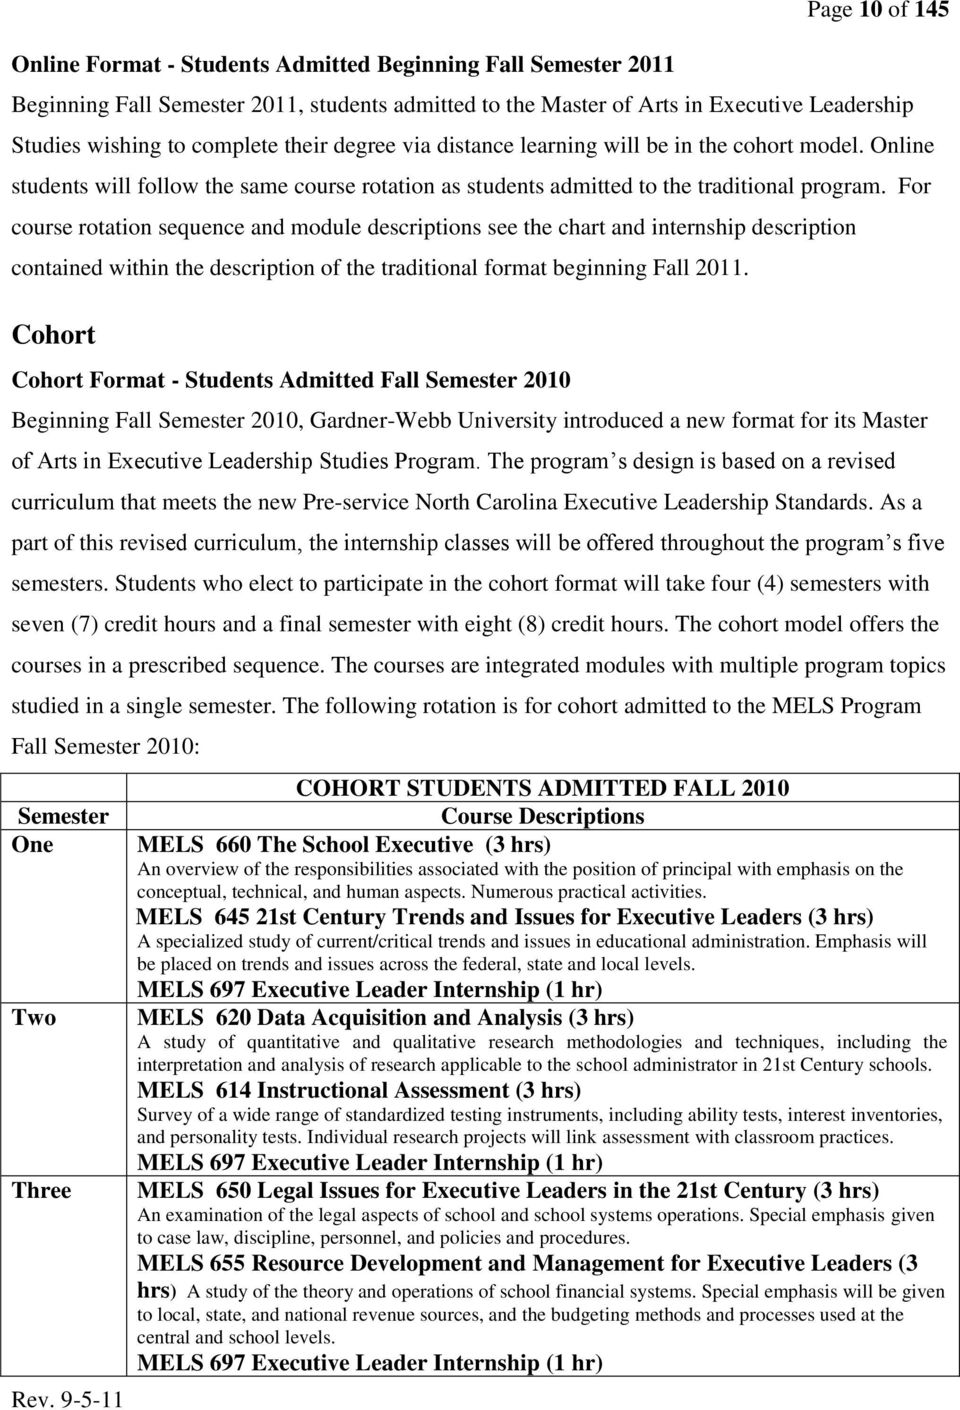 For course rotation sequence and module descriptions see the chart and internship description contained within the description of the traditional format beginning Fall 2011.